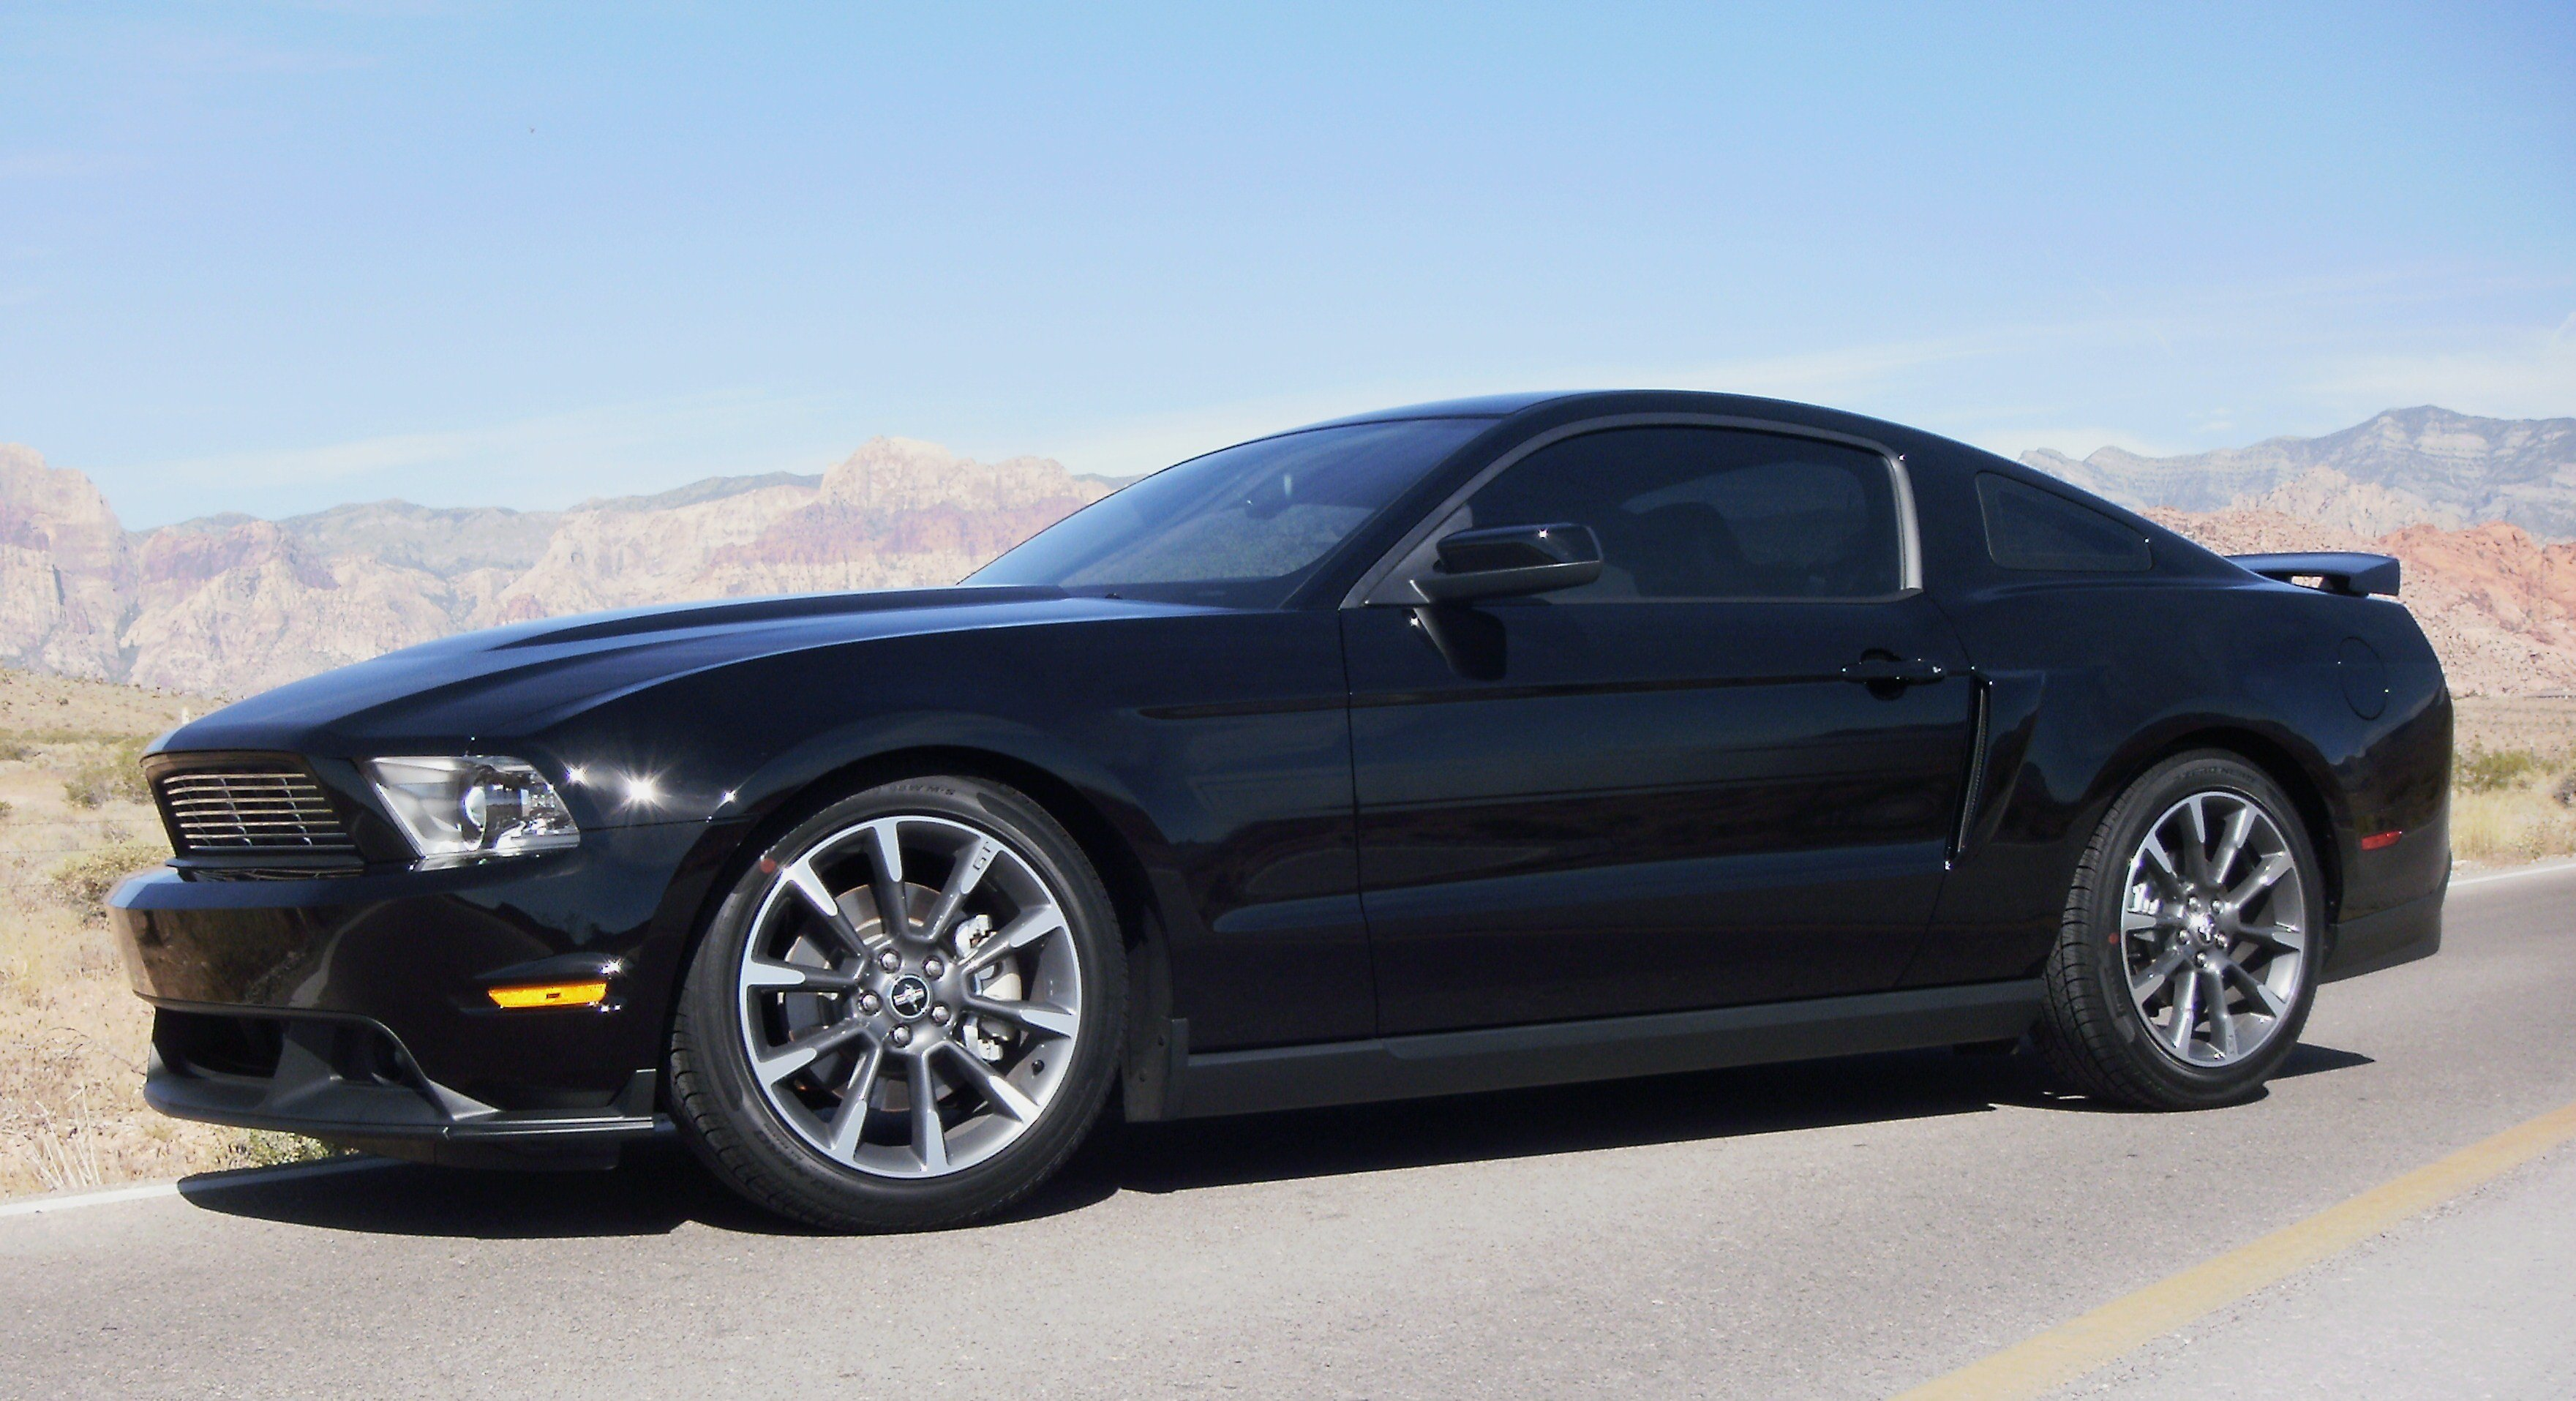 Pics Of The 2011 Mustang Gt Cs On Eibachs Ford Mustang Forum